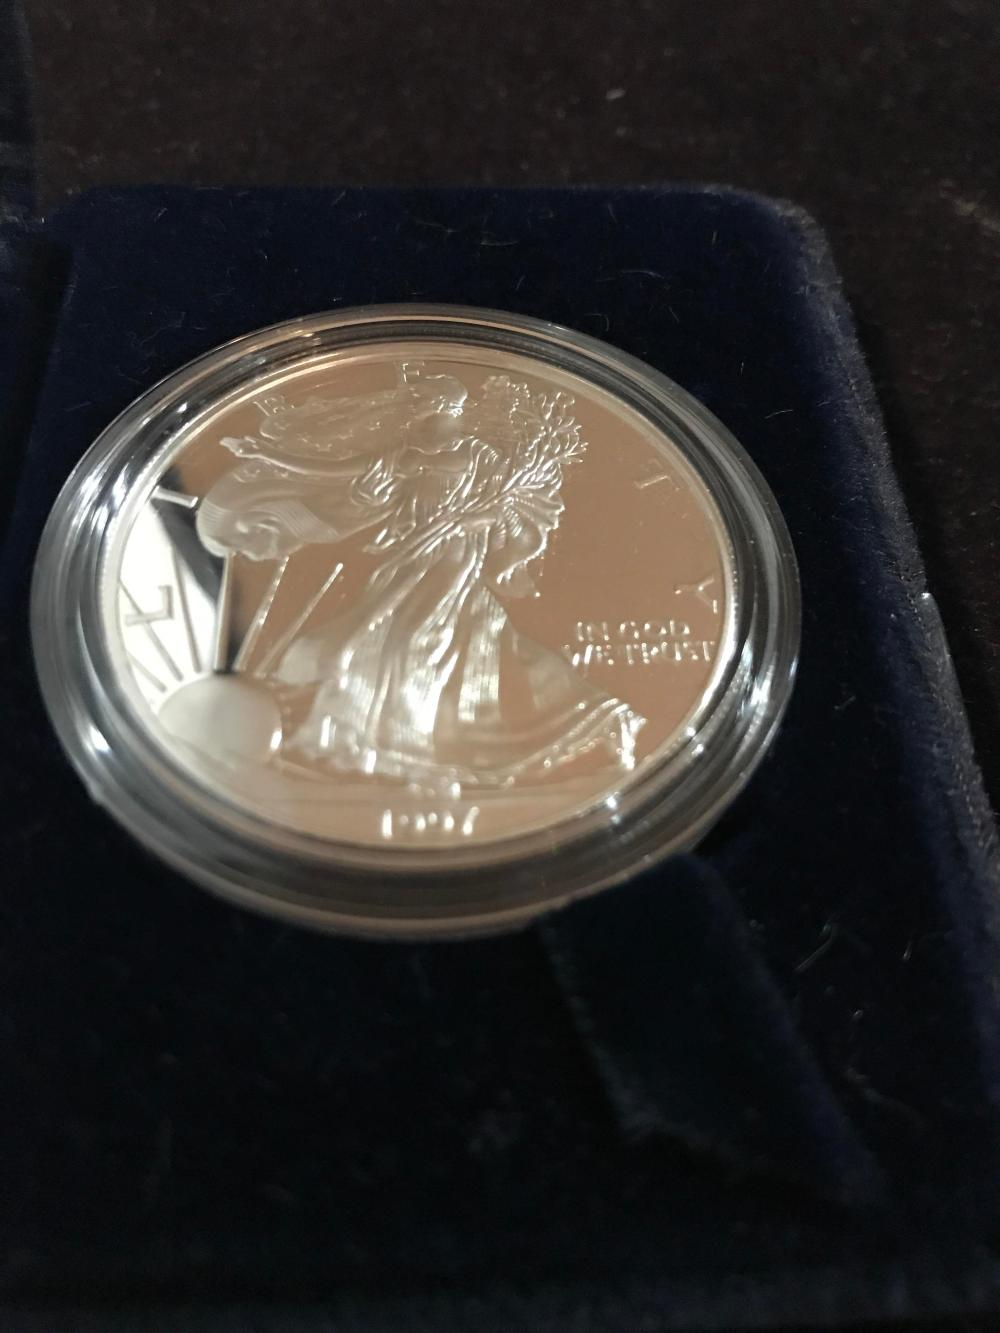 Lot 159: 1997 silver American eagle one dollar coin